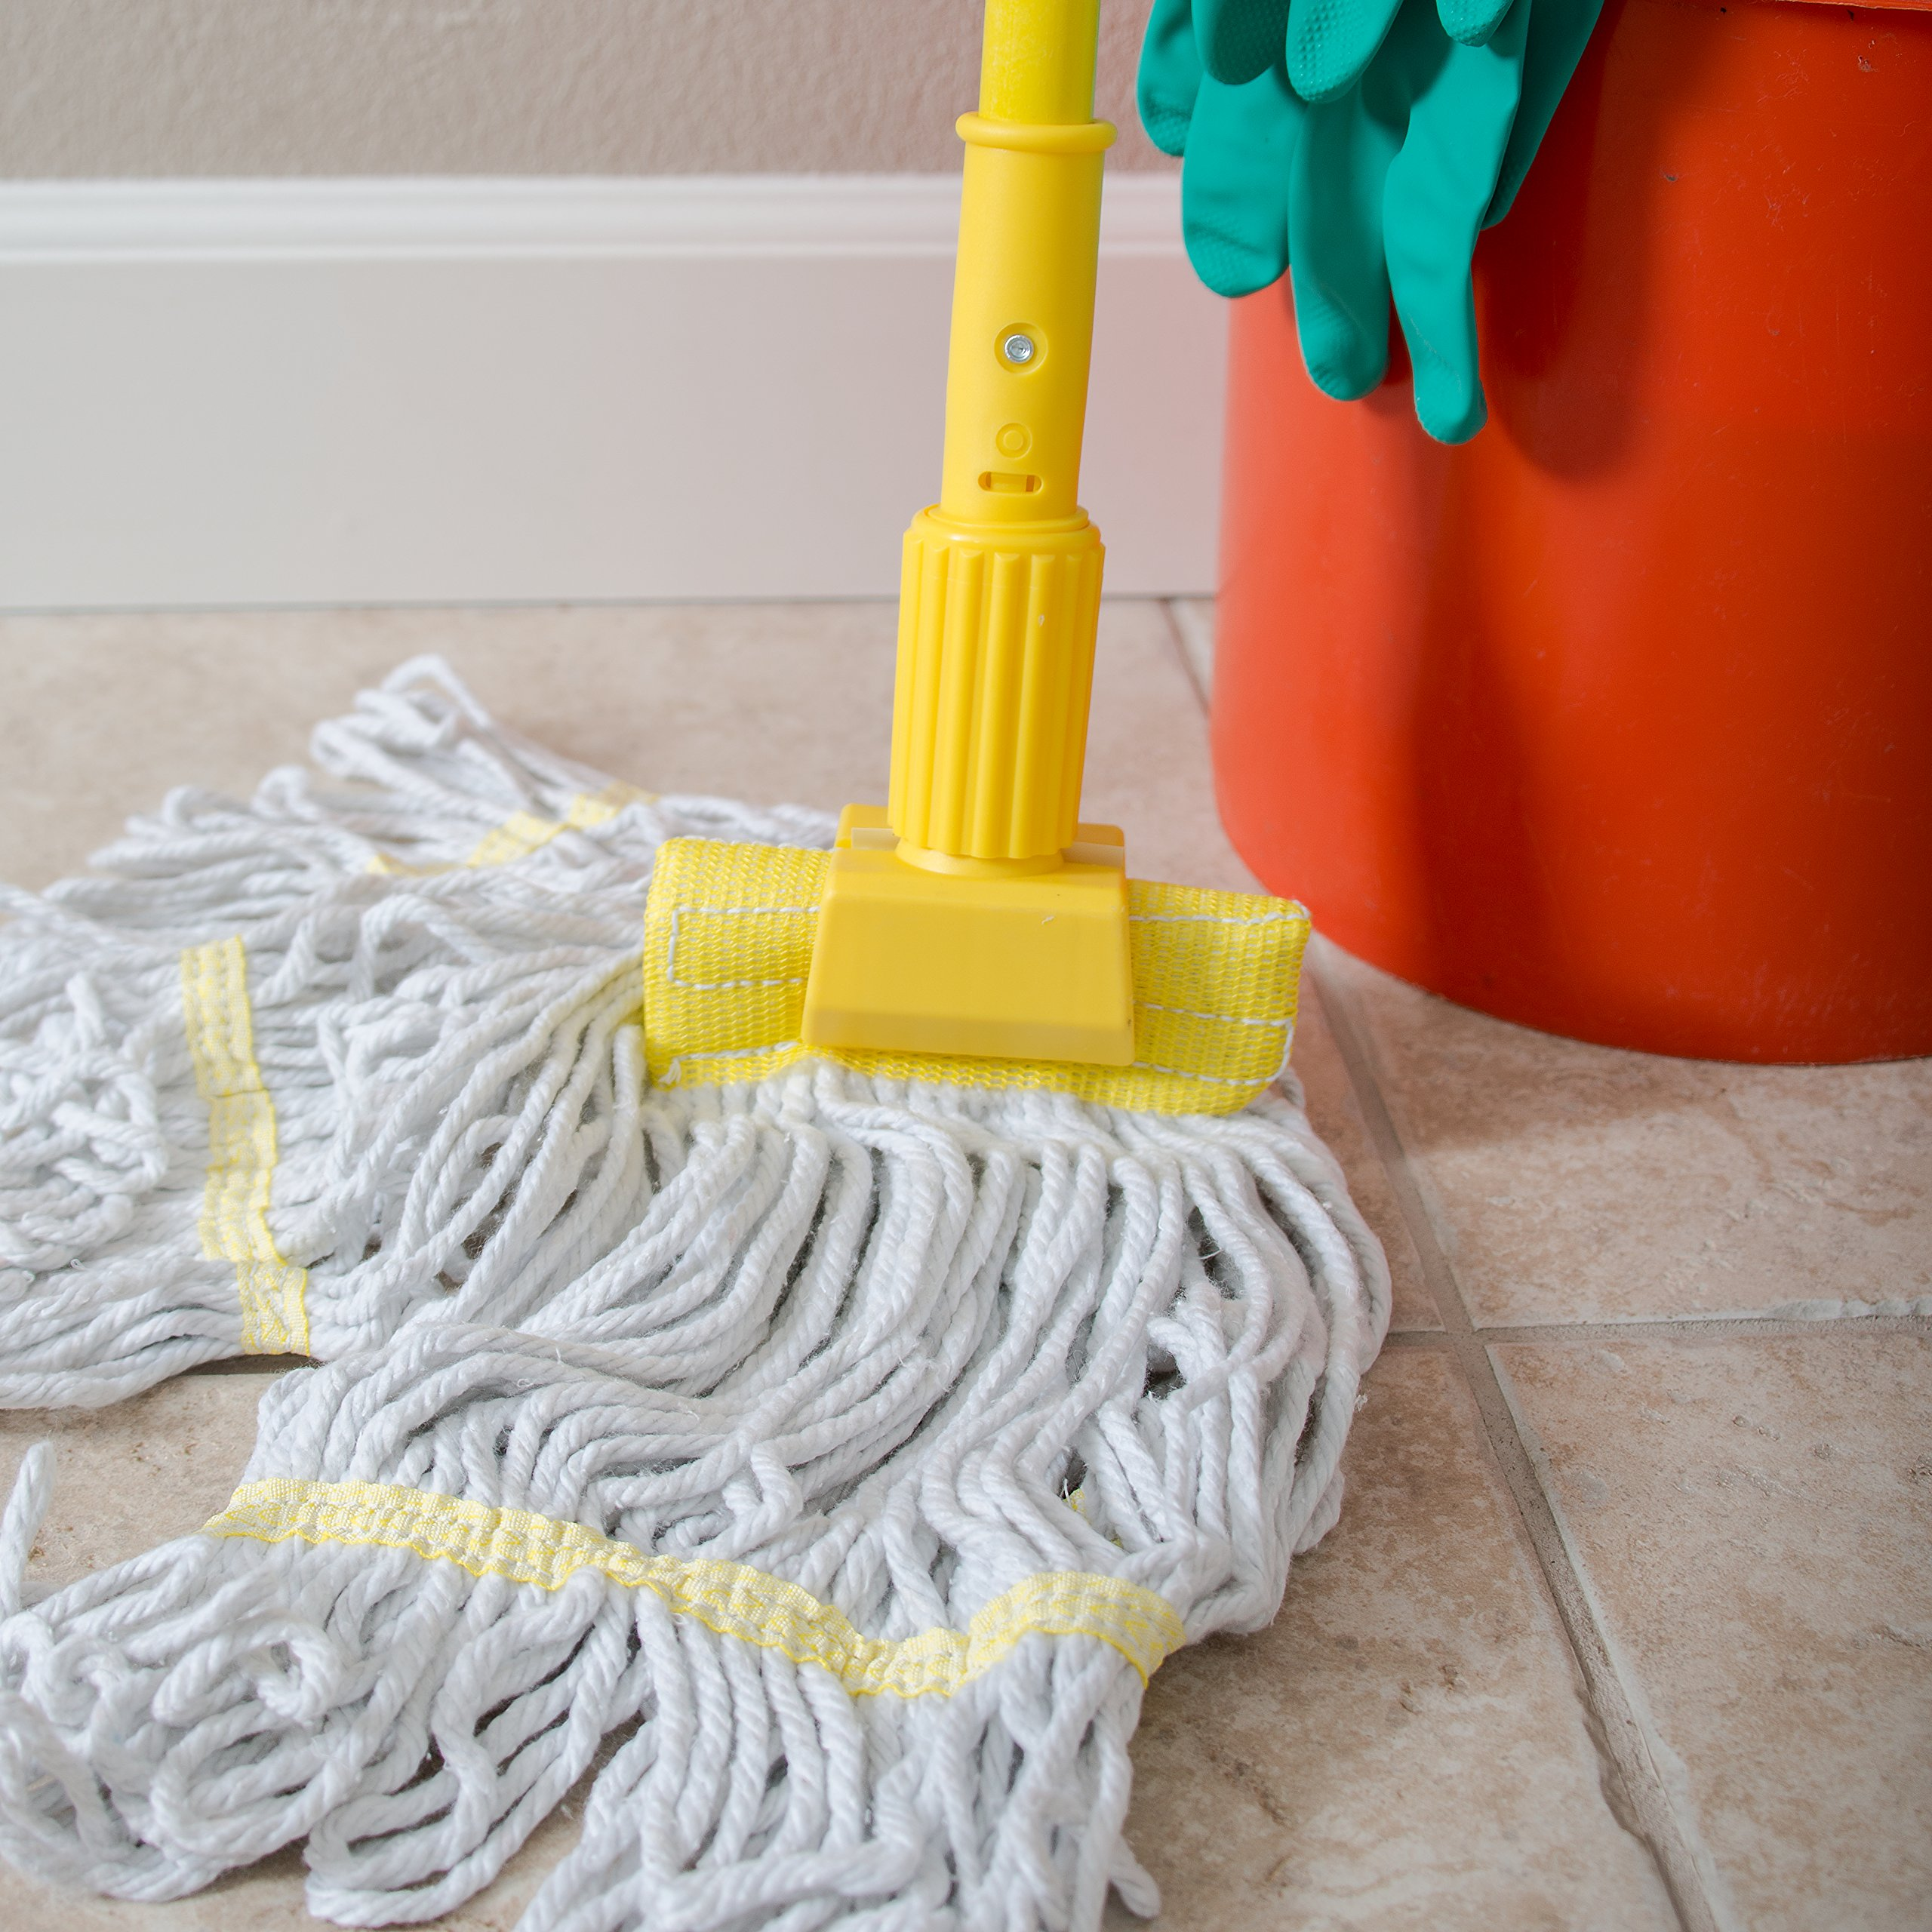 Carlisle 36947504 Commercial Jaw Clamp Fiberglass Wet Mop Handle, 60'', Yellow by Carlisle (Image #5)